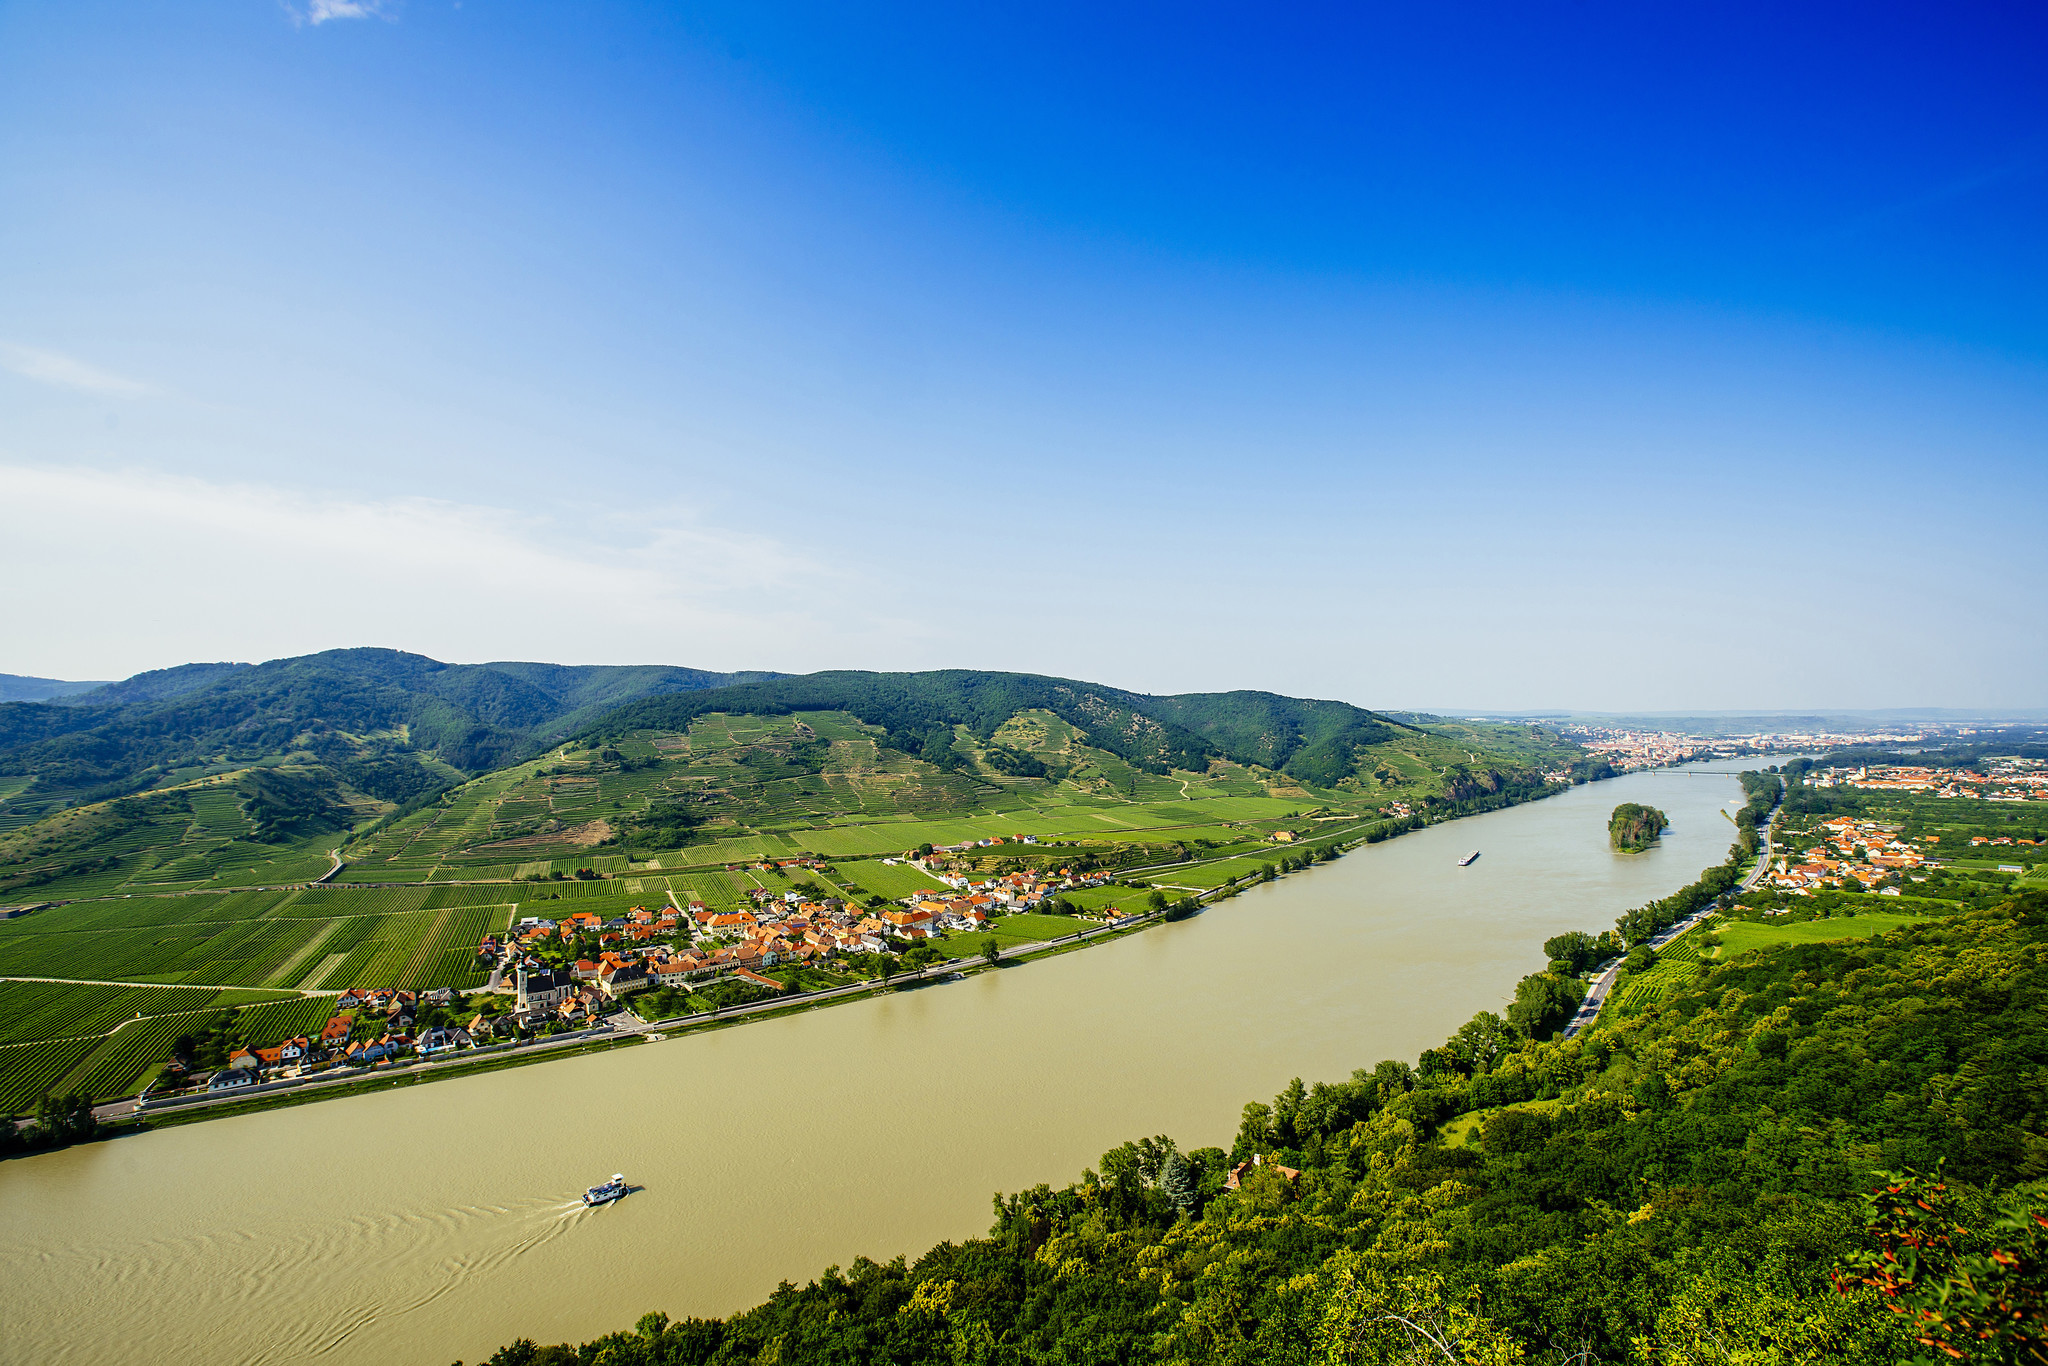 The path of the Danube River goes through lush scenery in the hills of Austria.